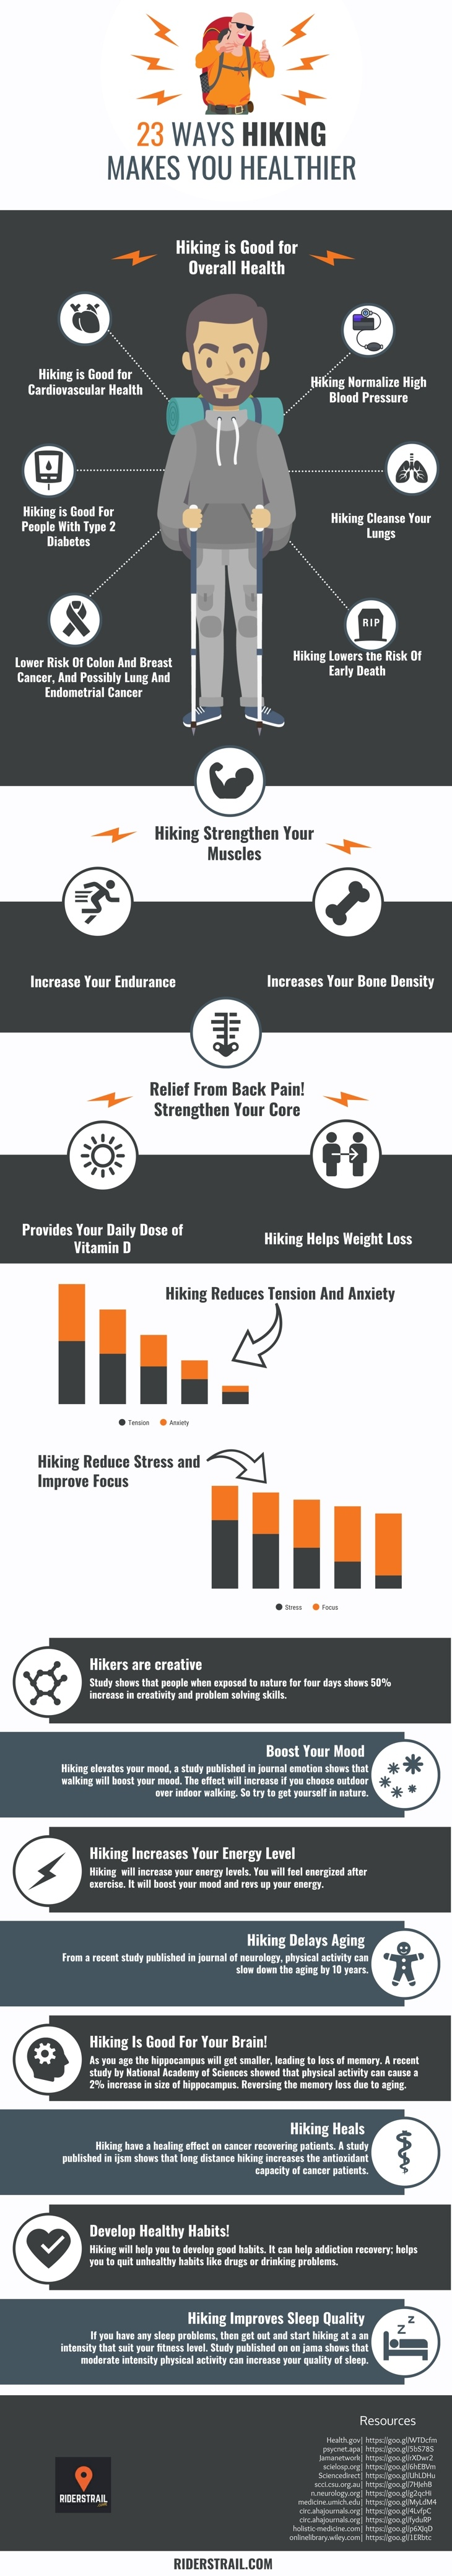 How does hiking make you healthier? Check out these 23 ways!